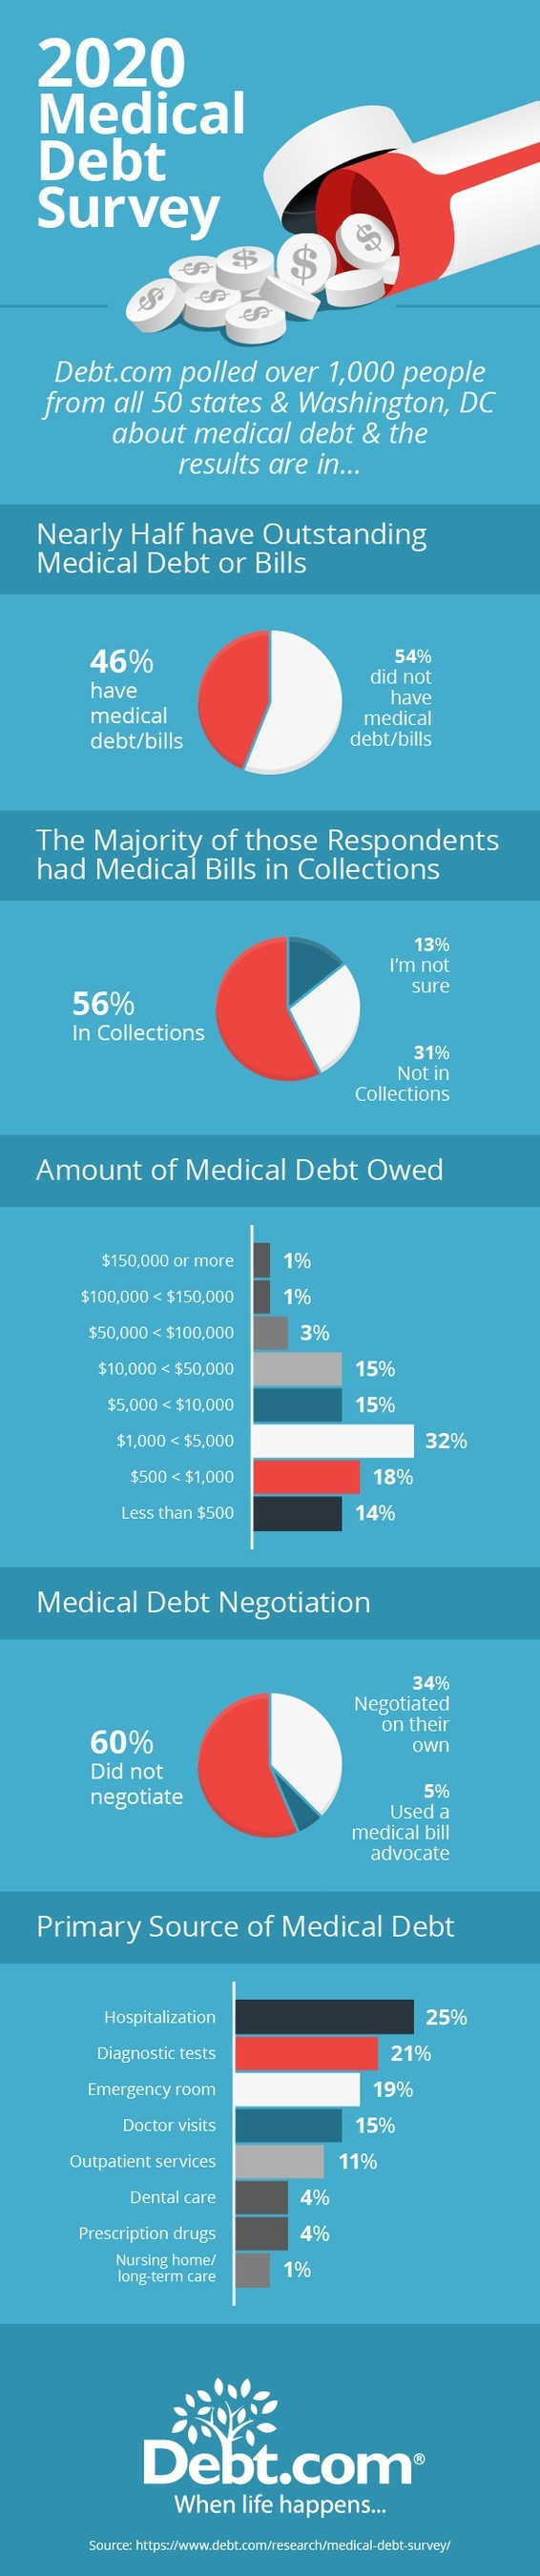 The finances of many Americans are so fragile that even a few thousand dollars in unforeseen medical expenses can drive them from the doctor to the debt collector. Visit Debt.com for the full survey results.